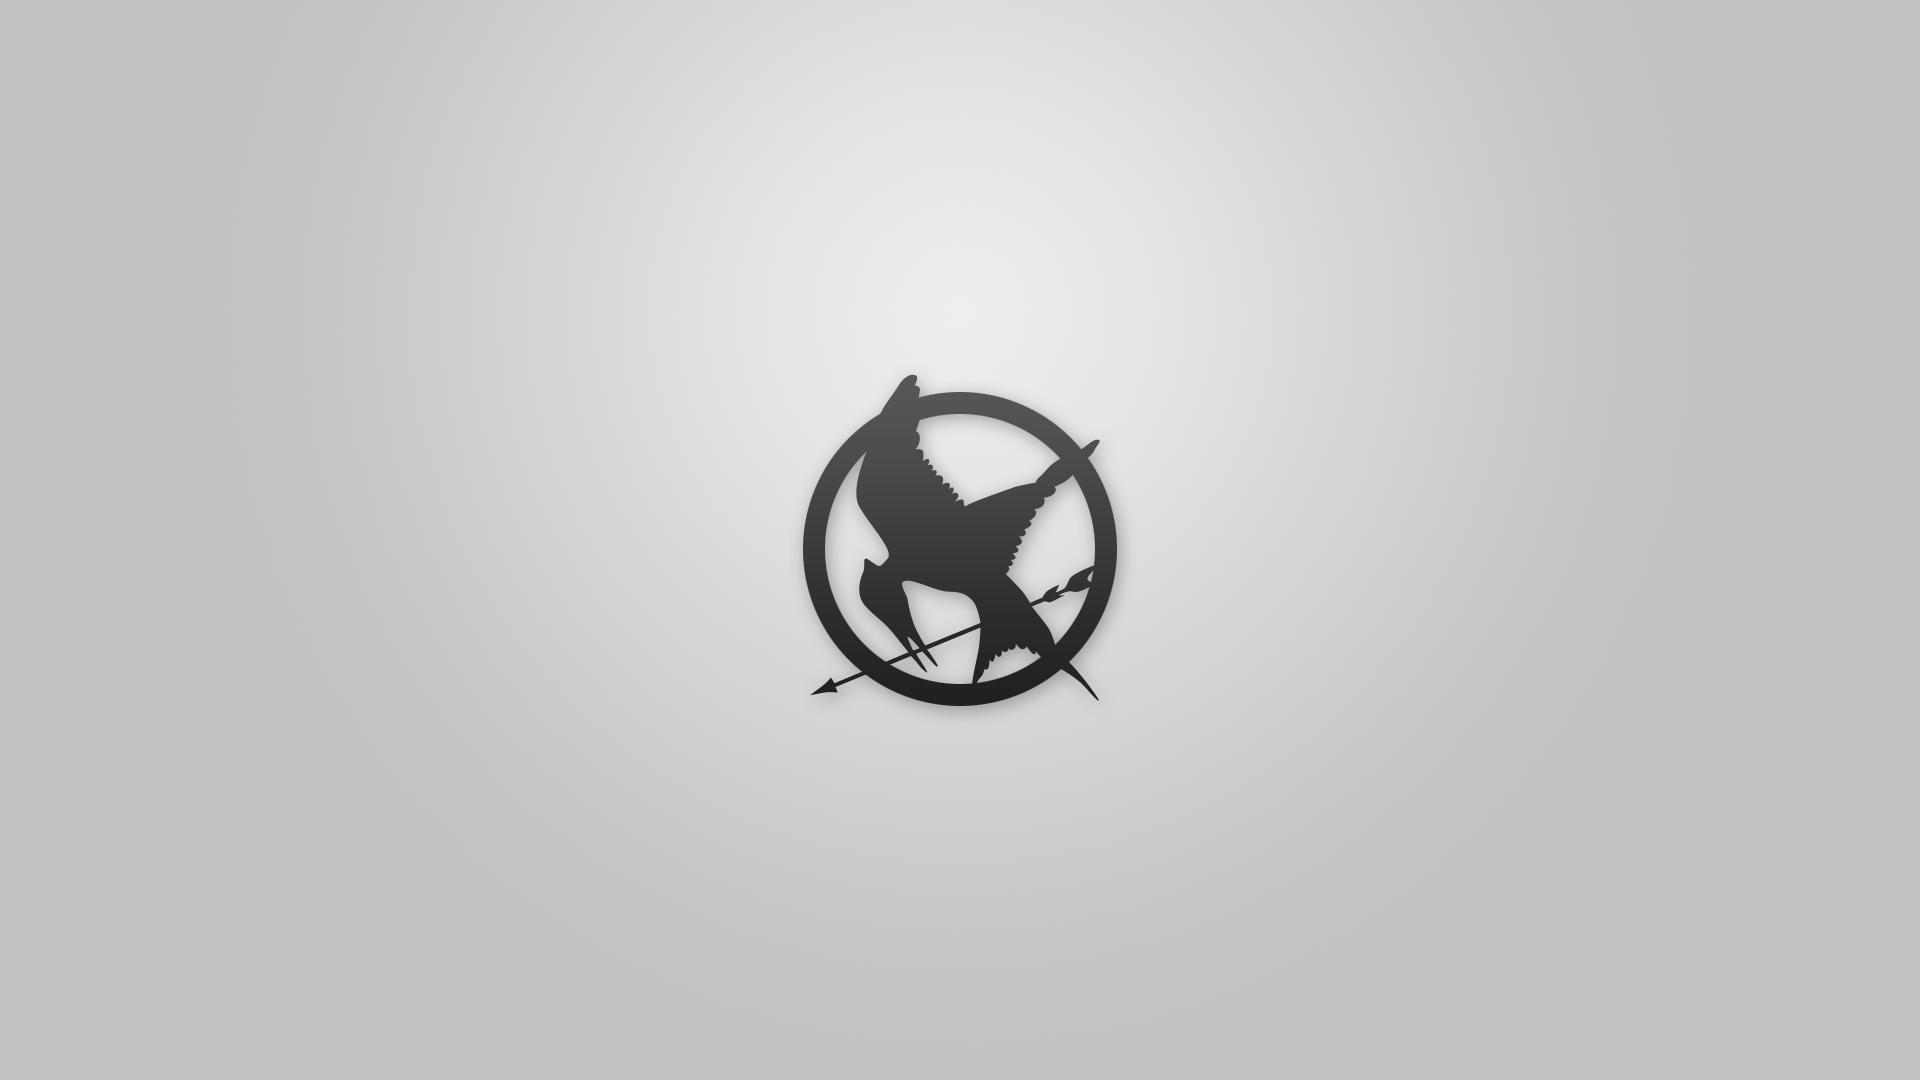 Hunger games catching fire wallpapers awesome wallpapers catching fire 5 catching fire 1 voltagebd Image collections